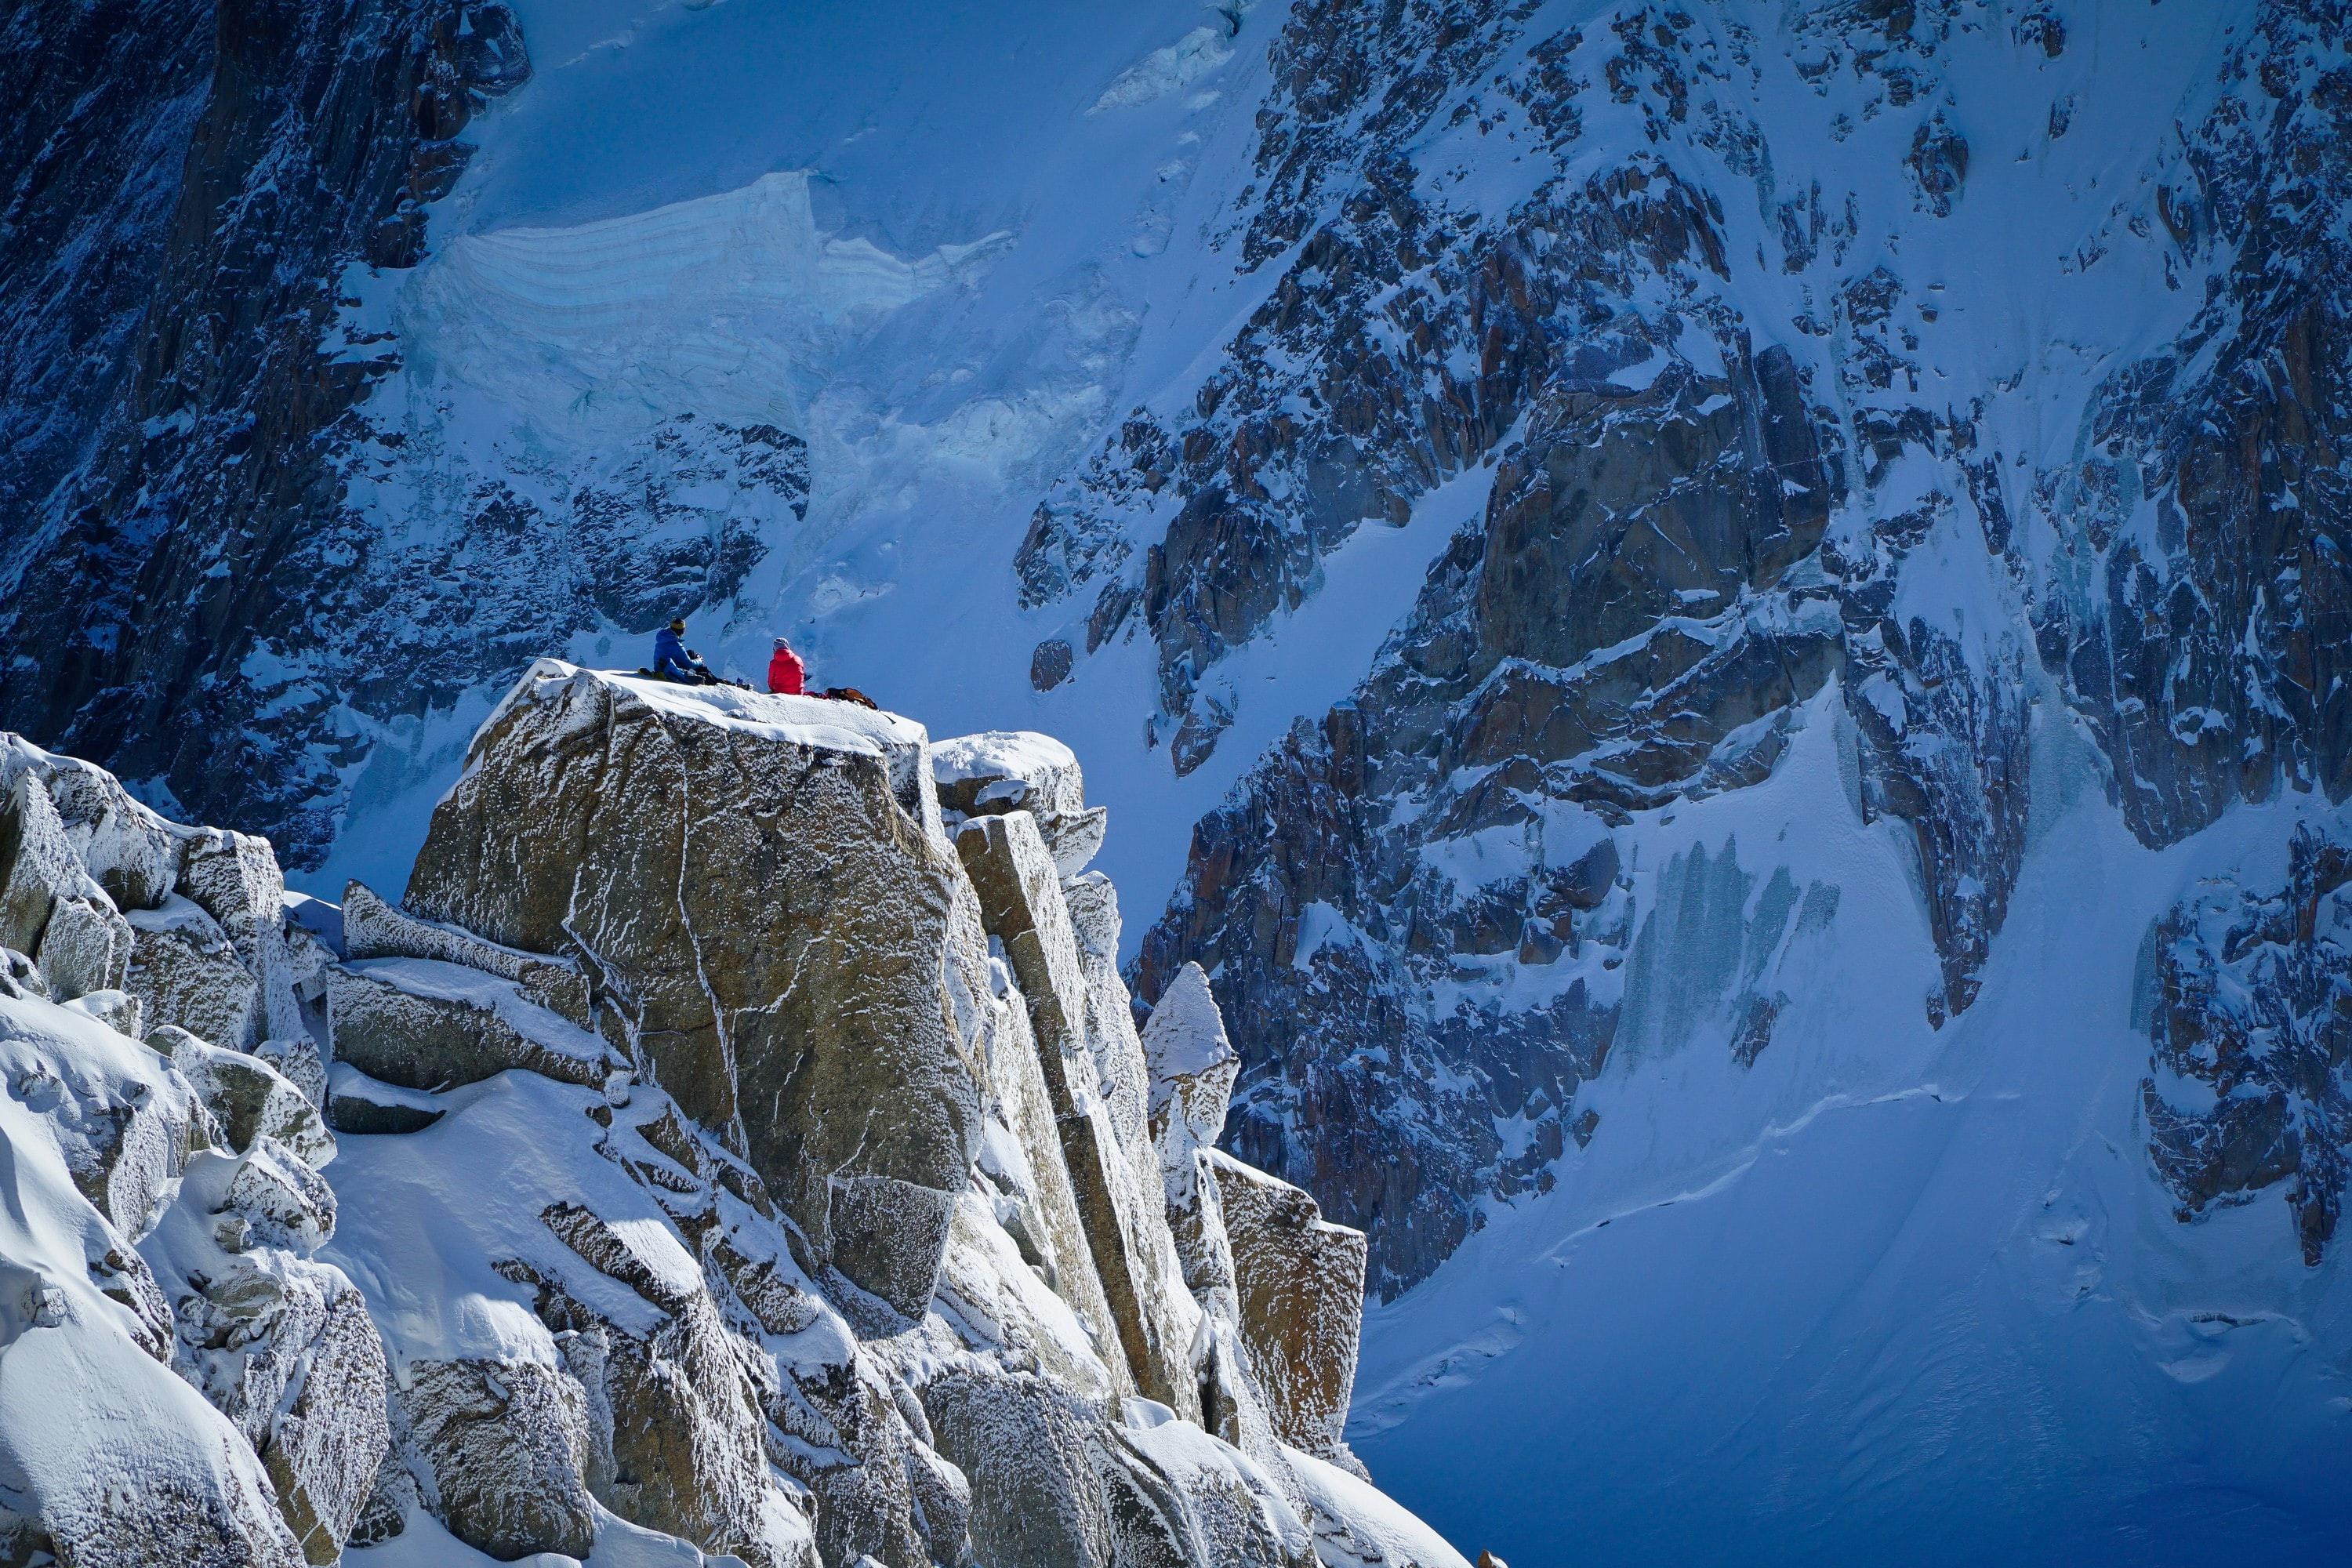 Two people wearing winter jackets sitting on a cliff on the side of a snowy mountain during winter in Chamonix